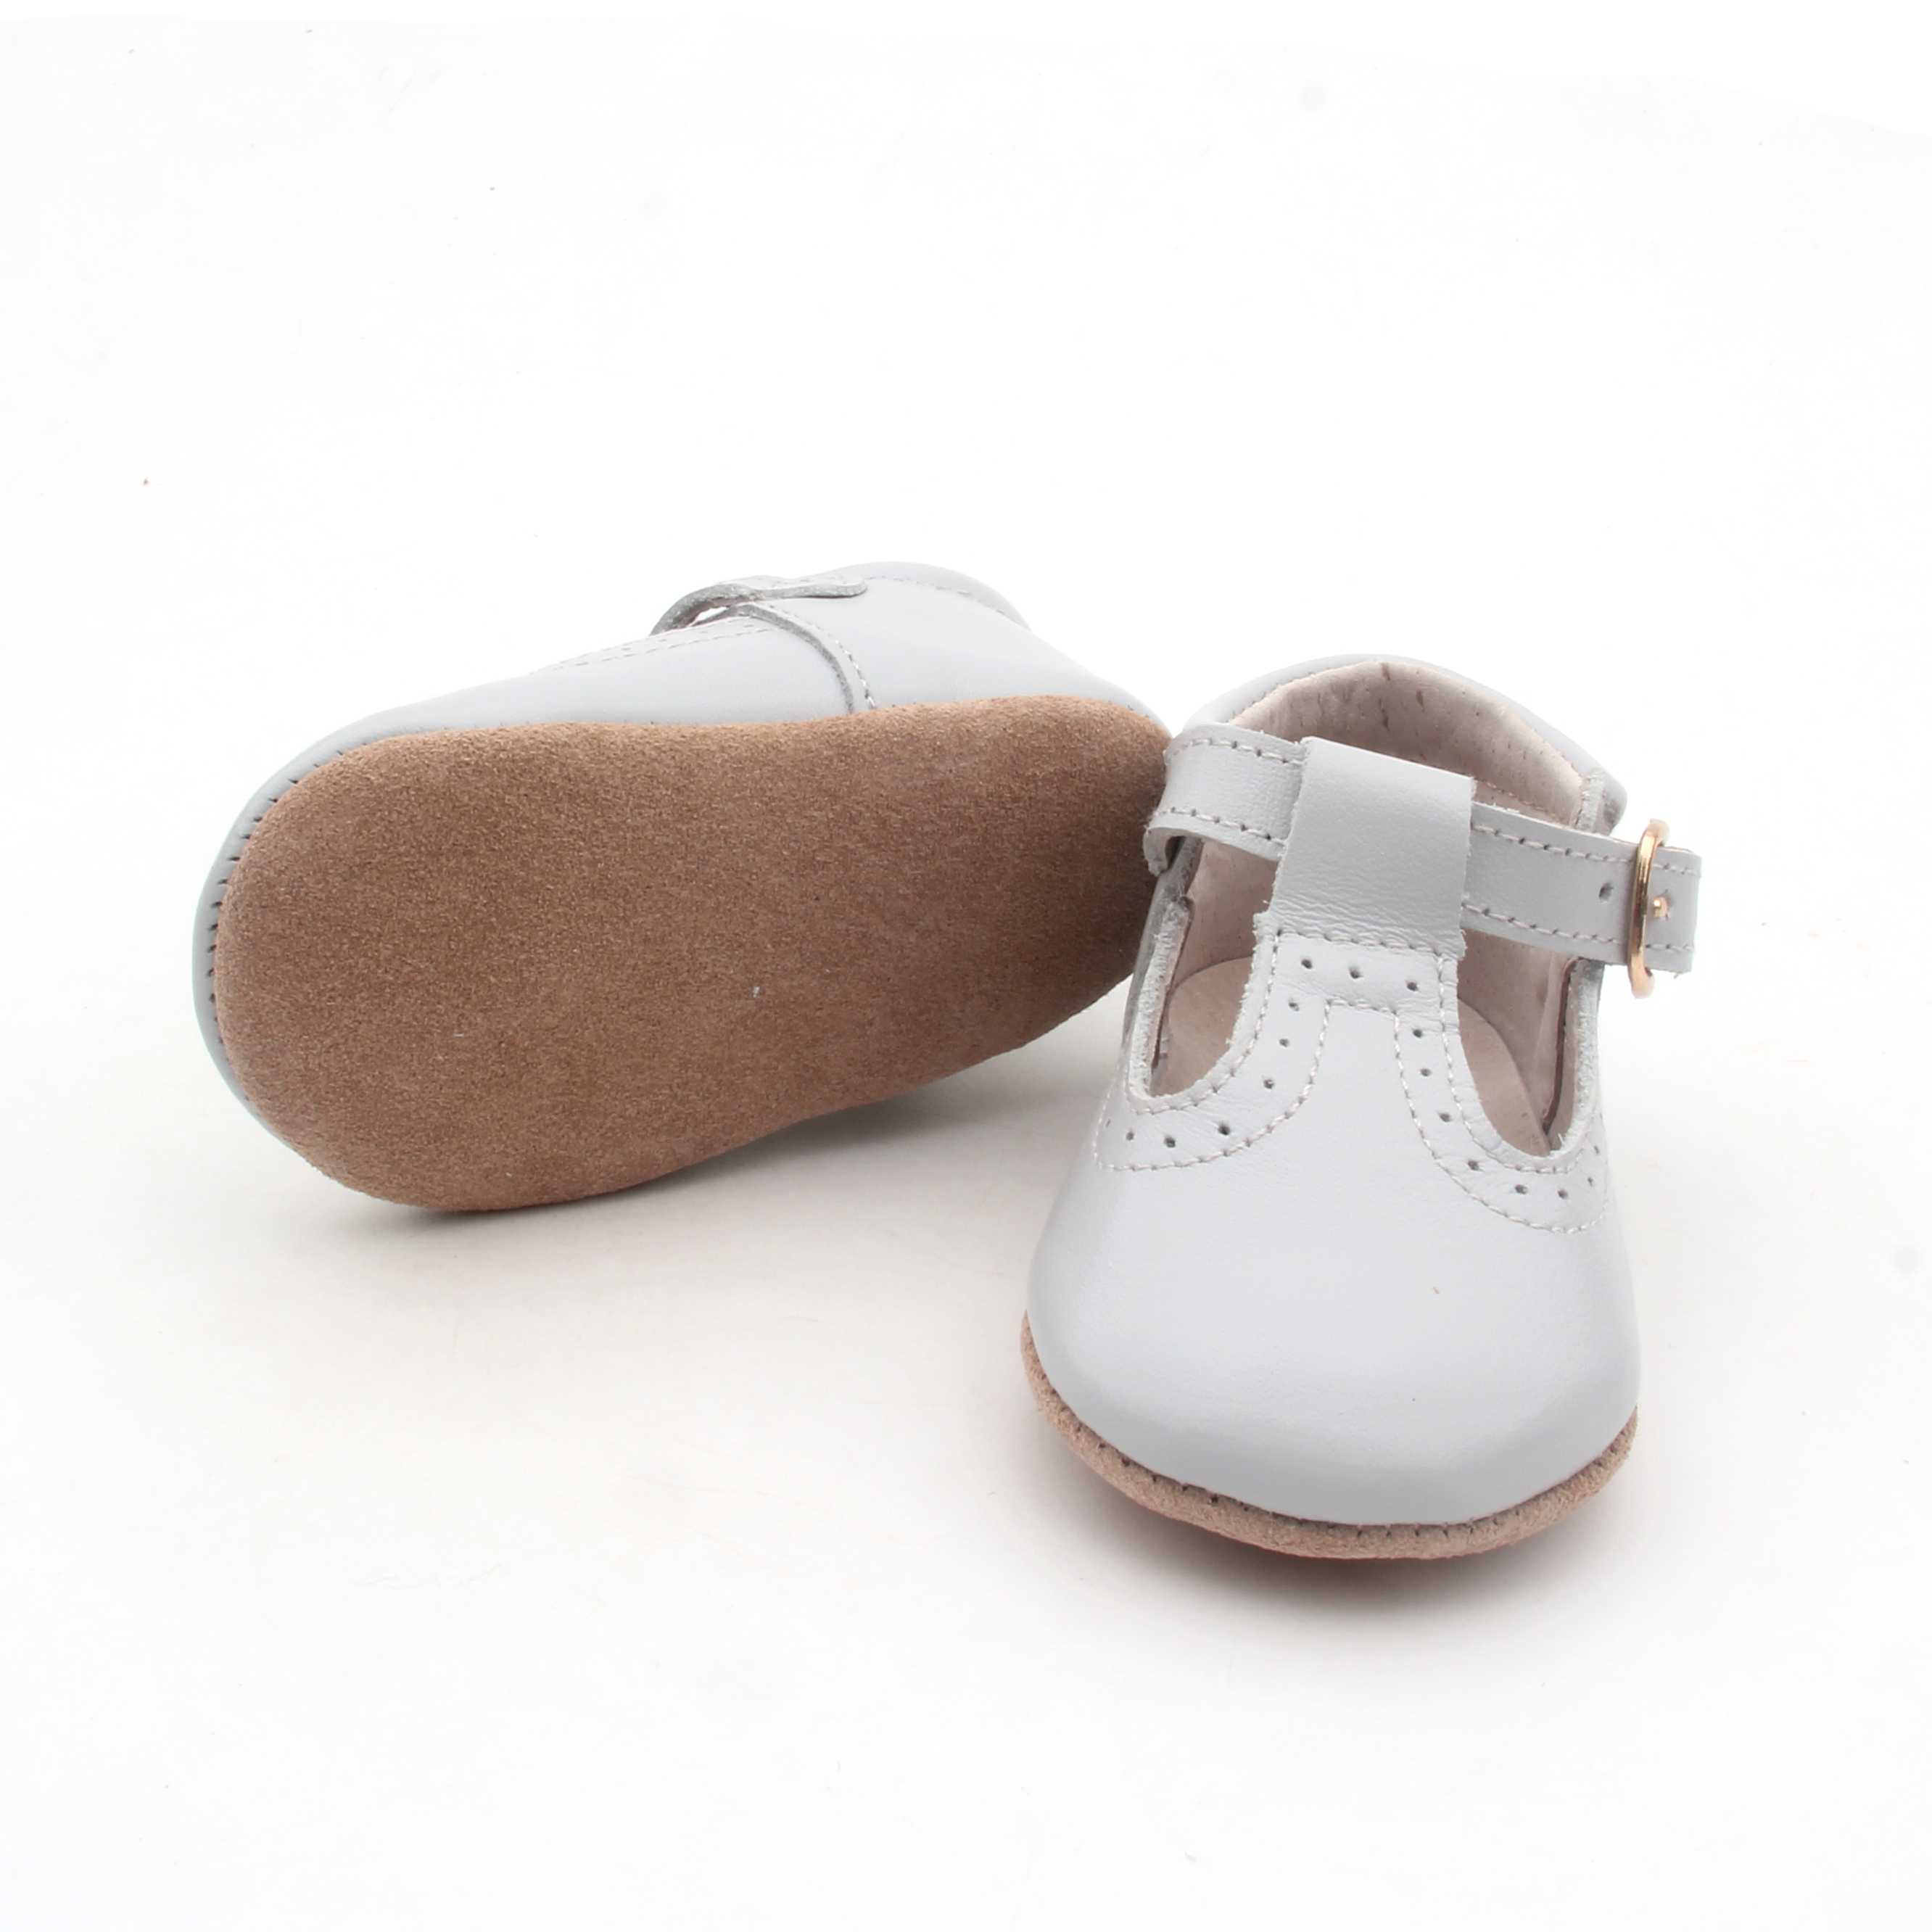 Baby T bar dress shoes Soft Leather